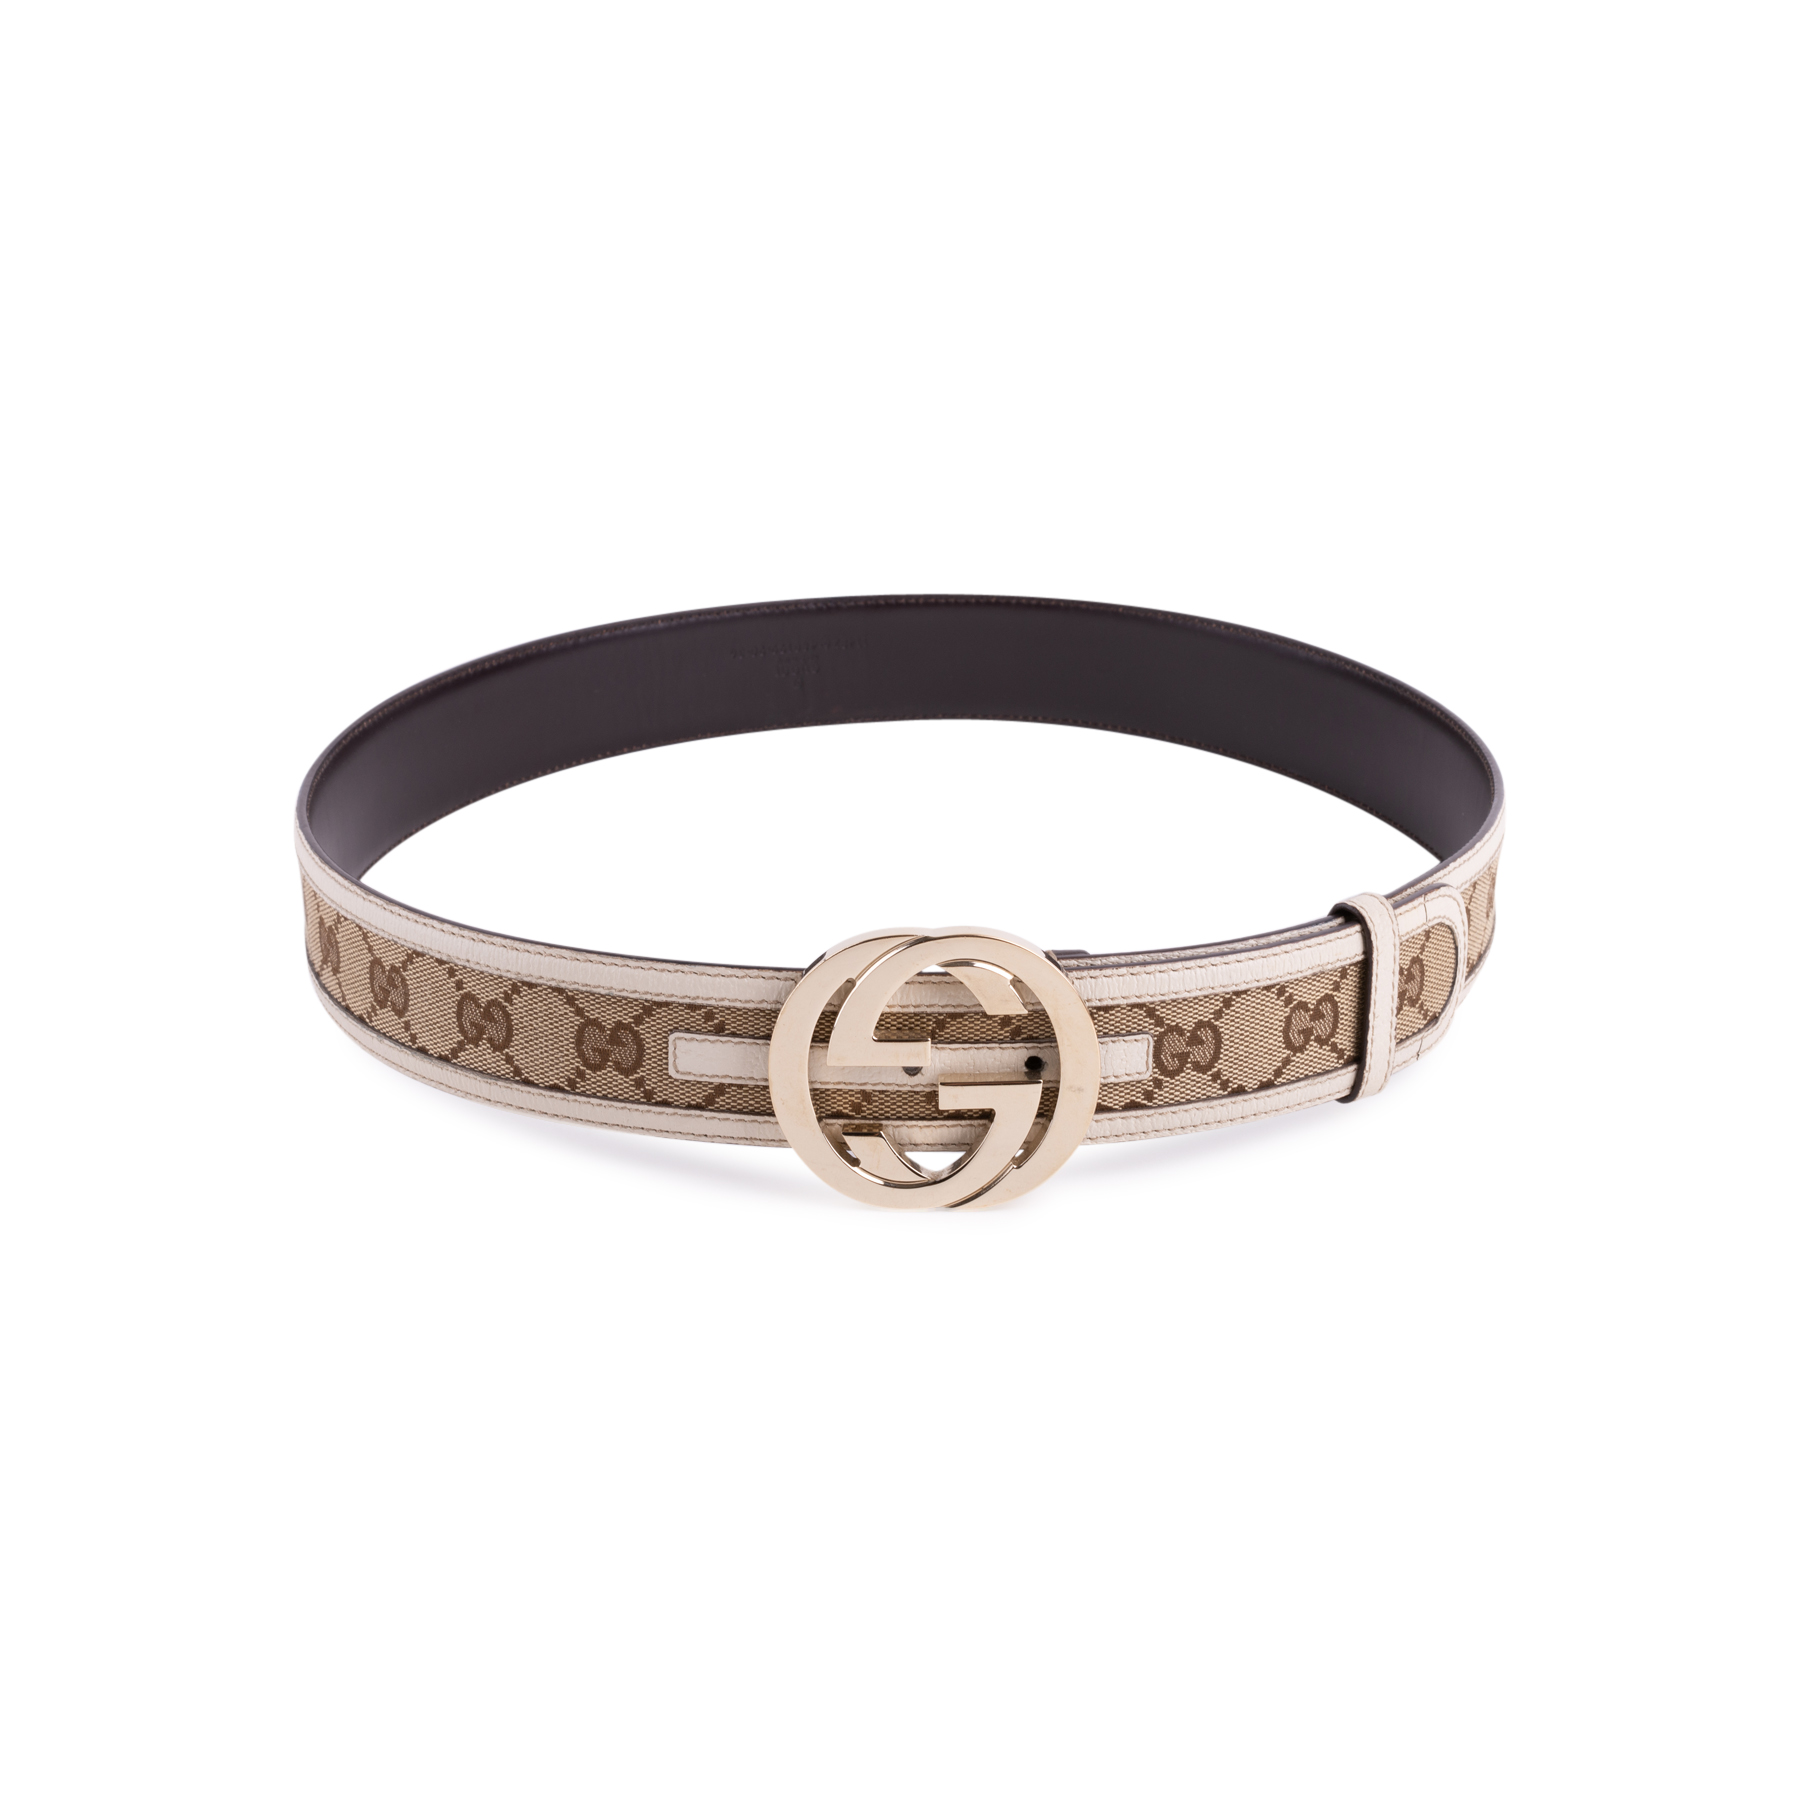 f5f5e42da Authentic Second Hand Gucci Monogram Leather Belt (PSS-647-00006) - THE  FIFTH COLLECTION